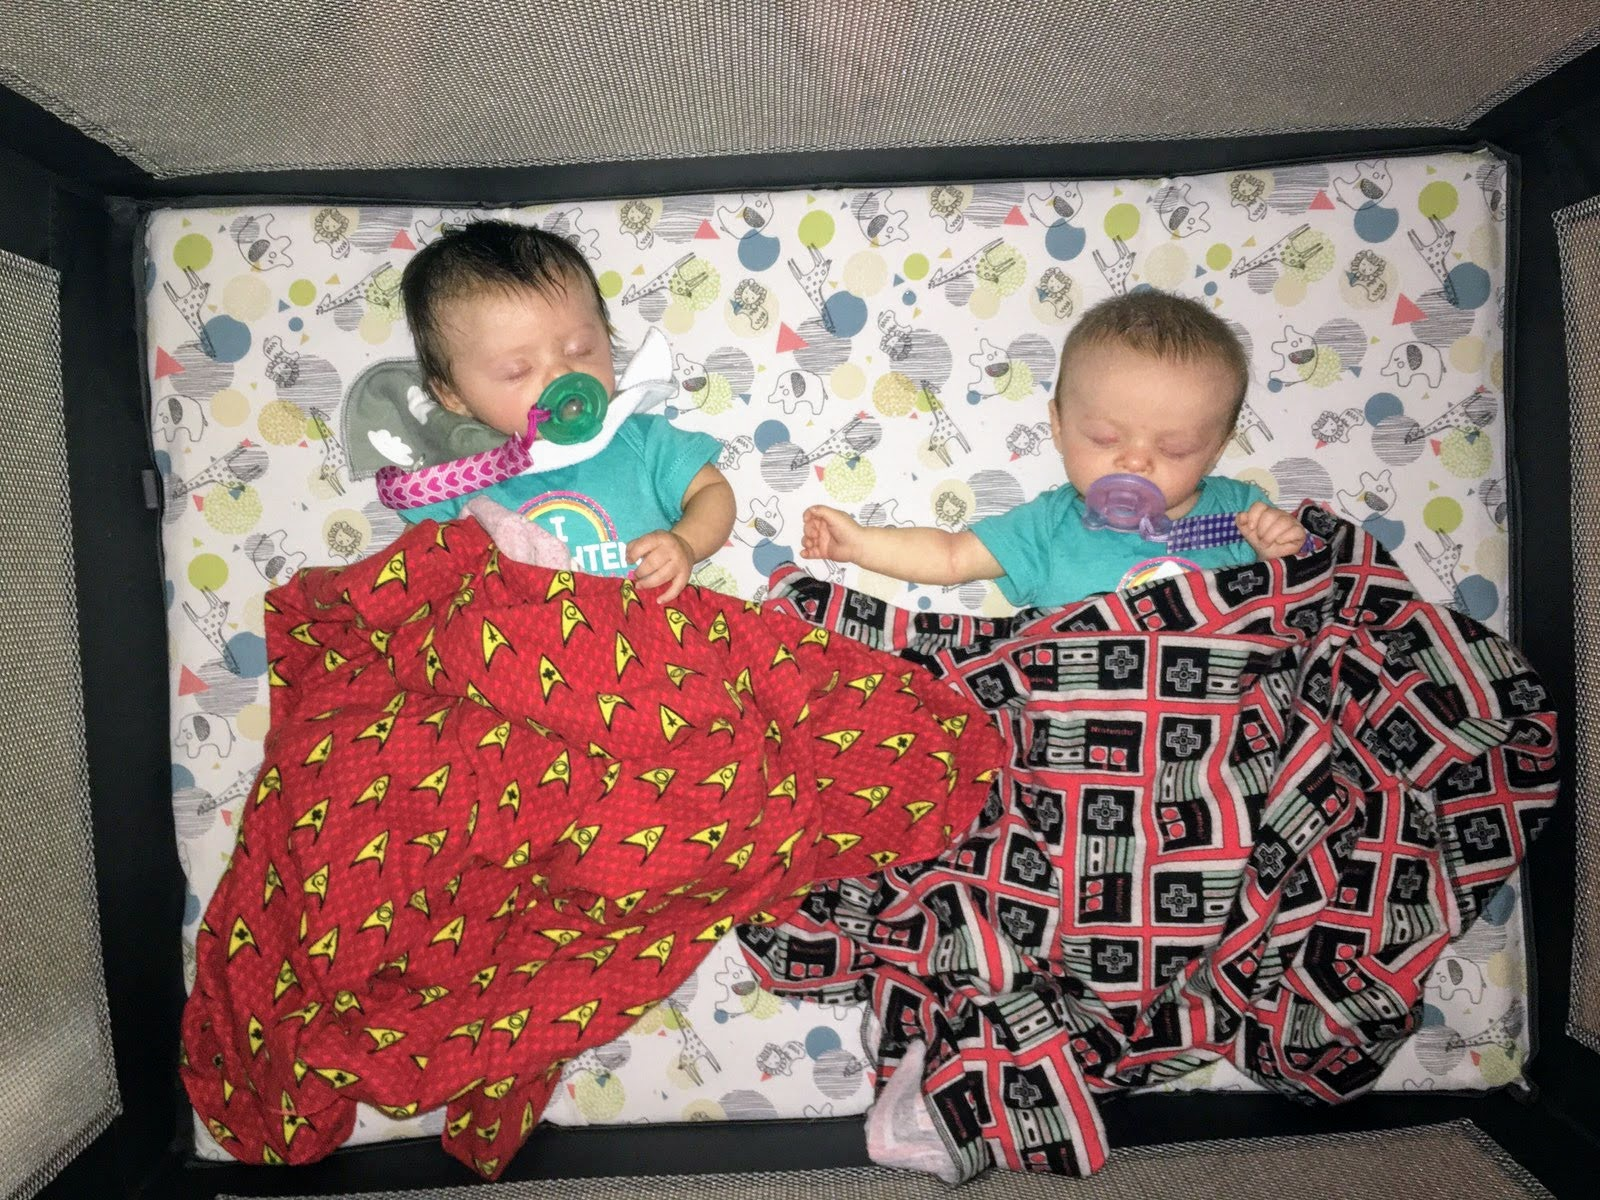 3 month old twins napping